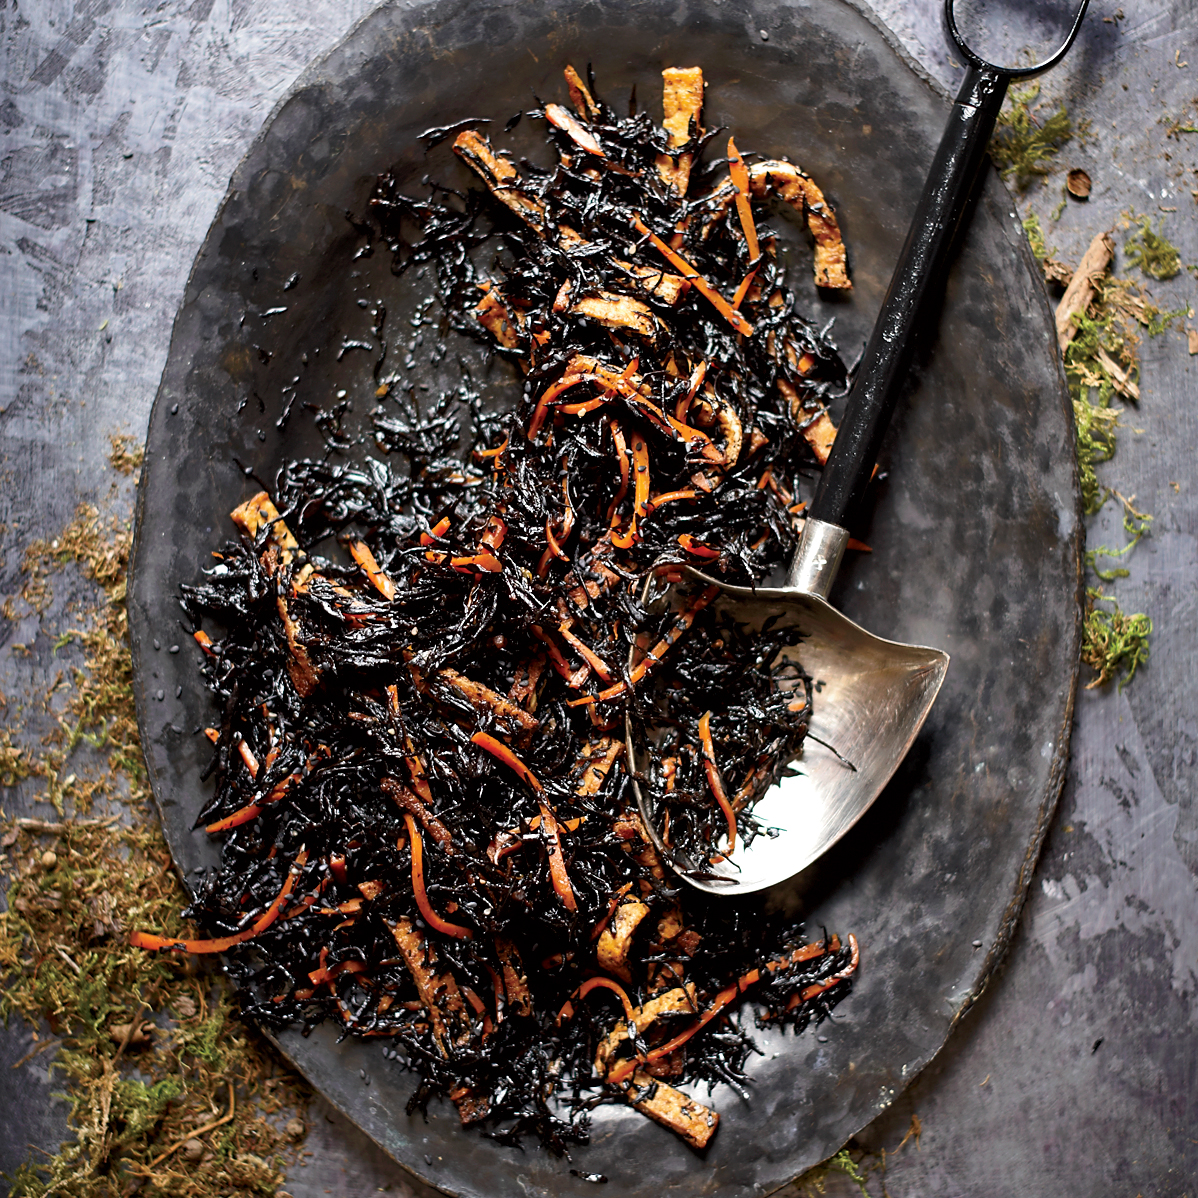 Worms in dirt hijiki salad recipe grace parisi food for Halloween dinner party food for adults